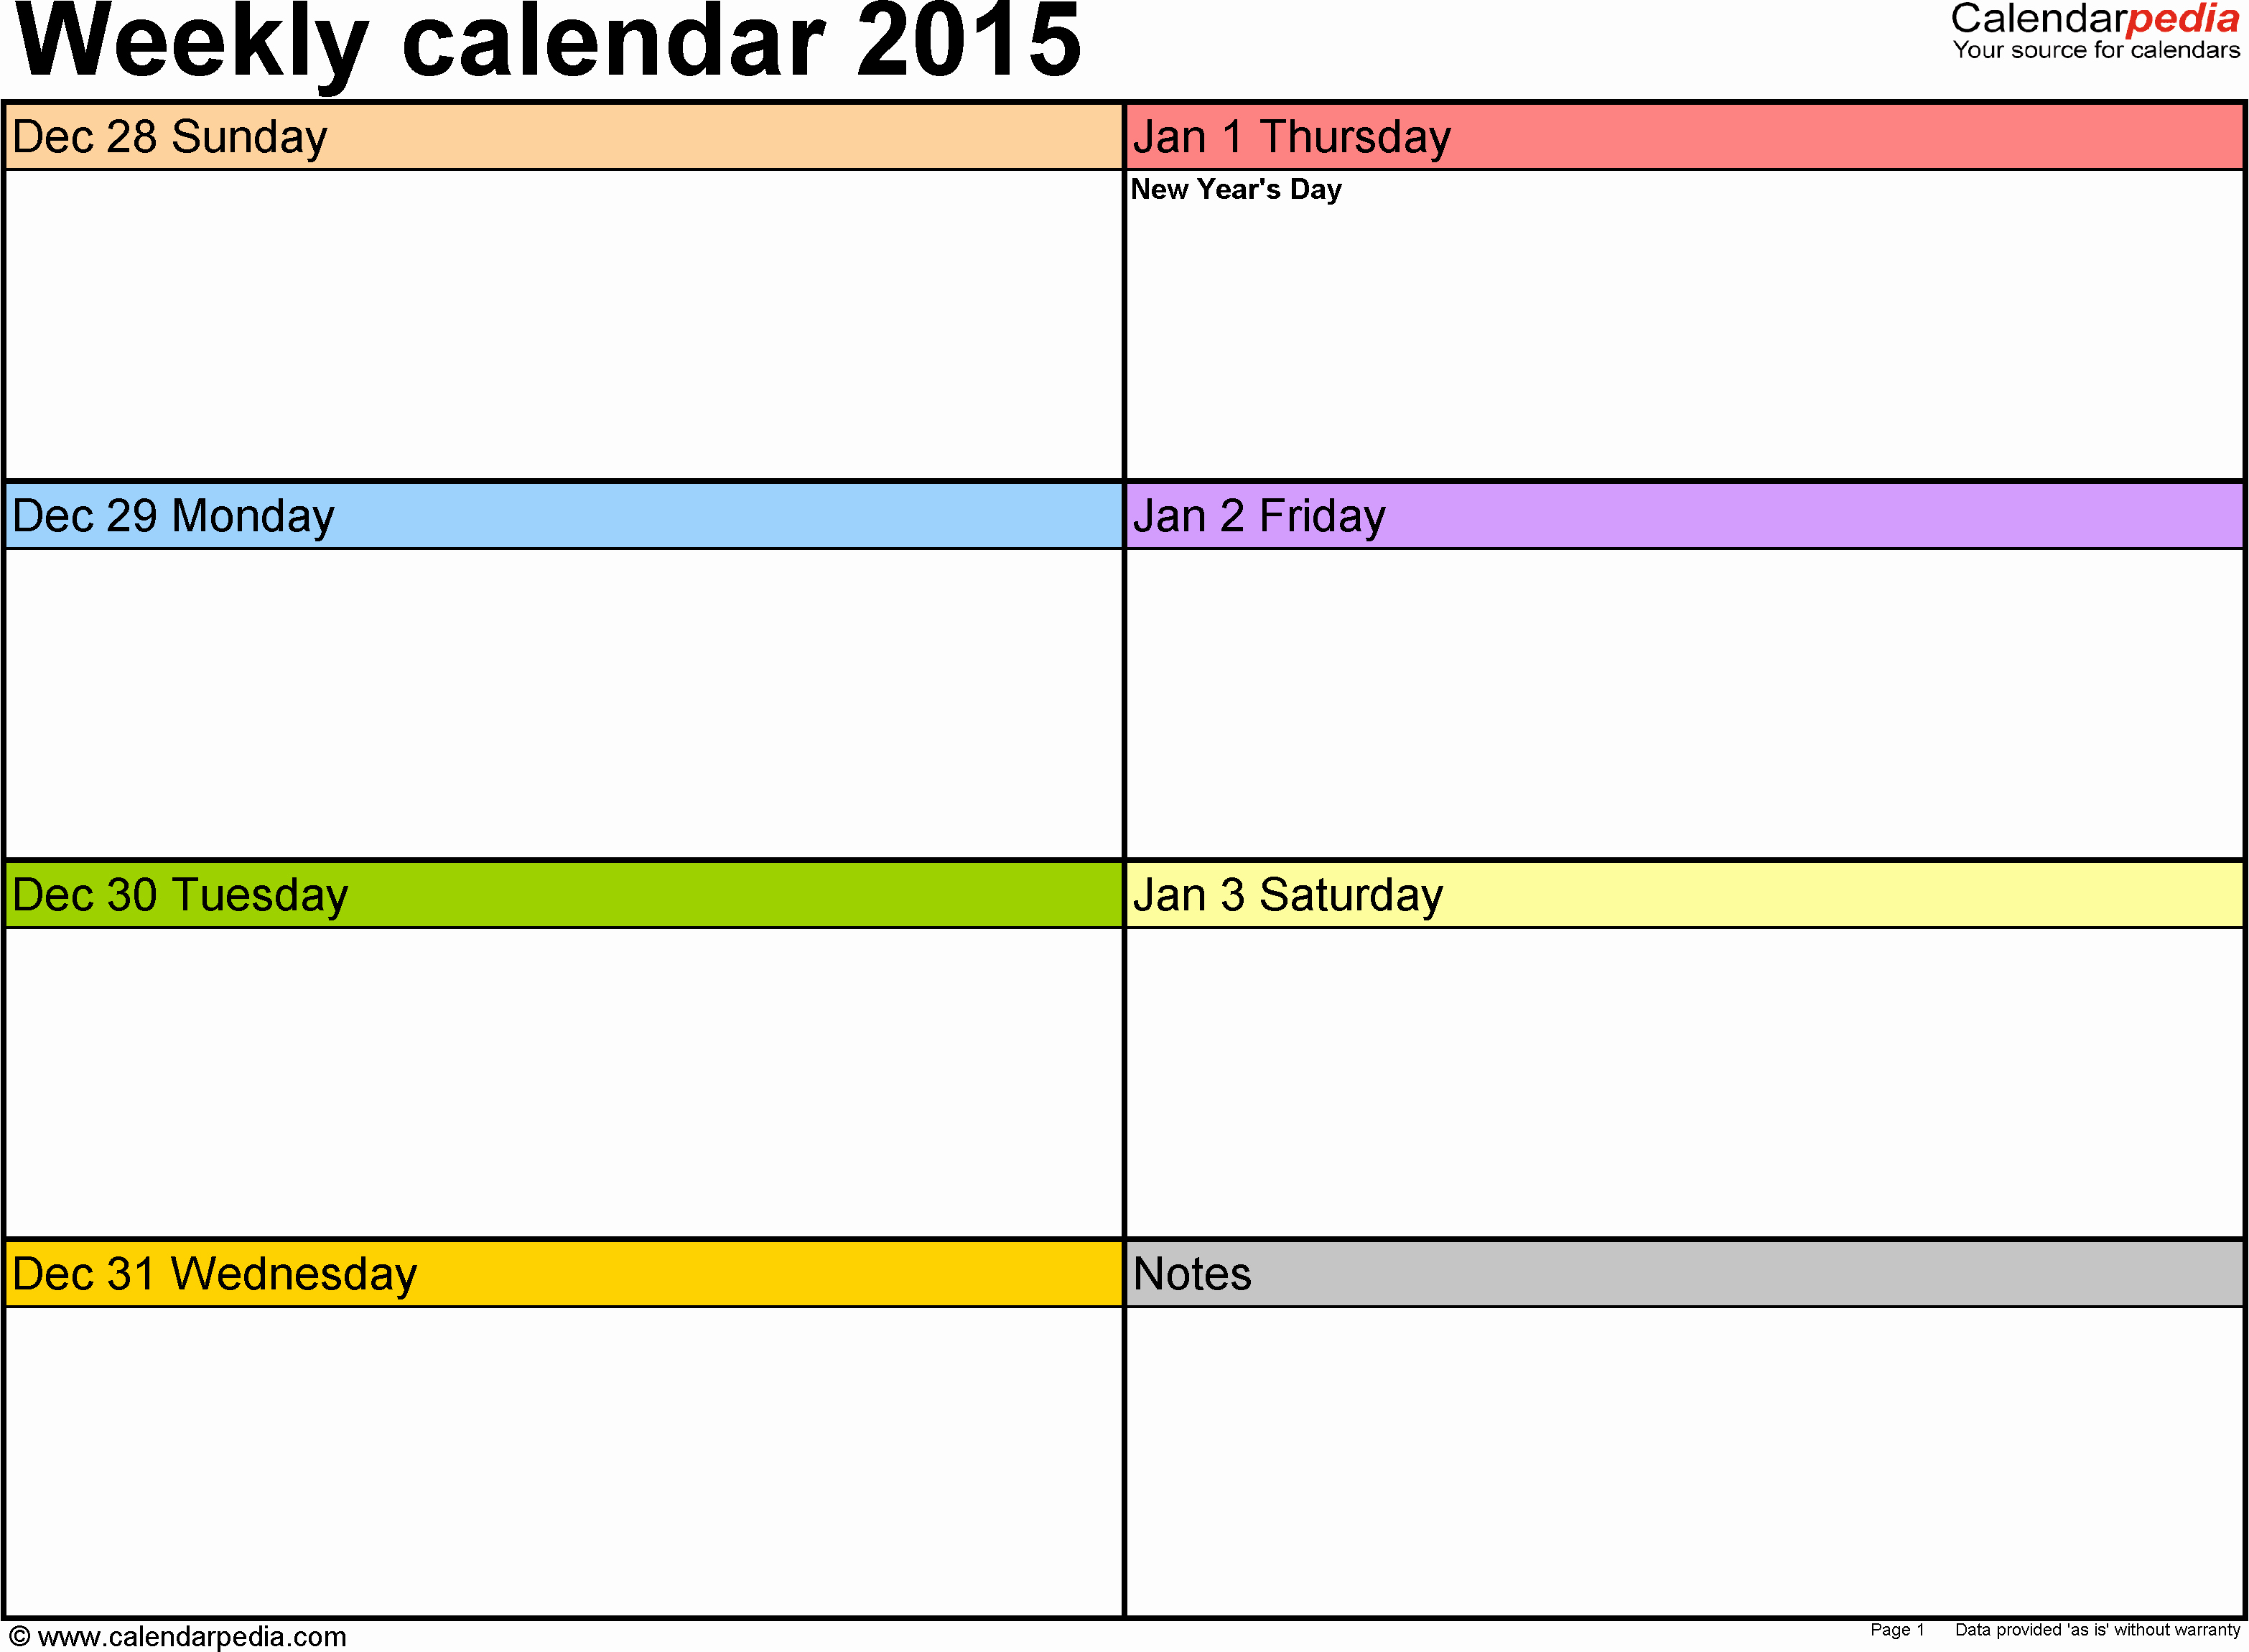 Week Schedule Template Excel New Weekly Calendar 2015 for Excel 12 Free Printable Templates